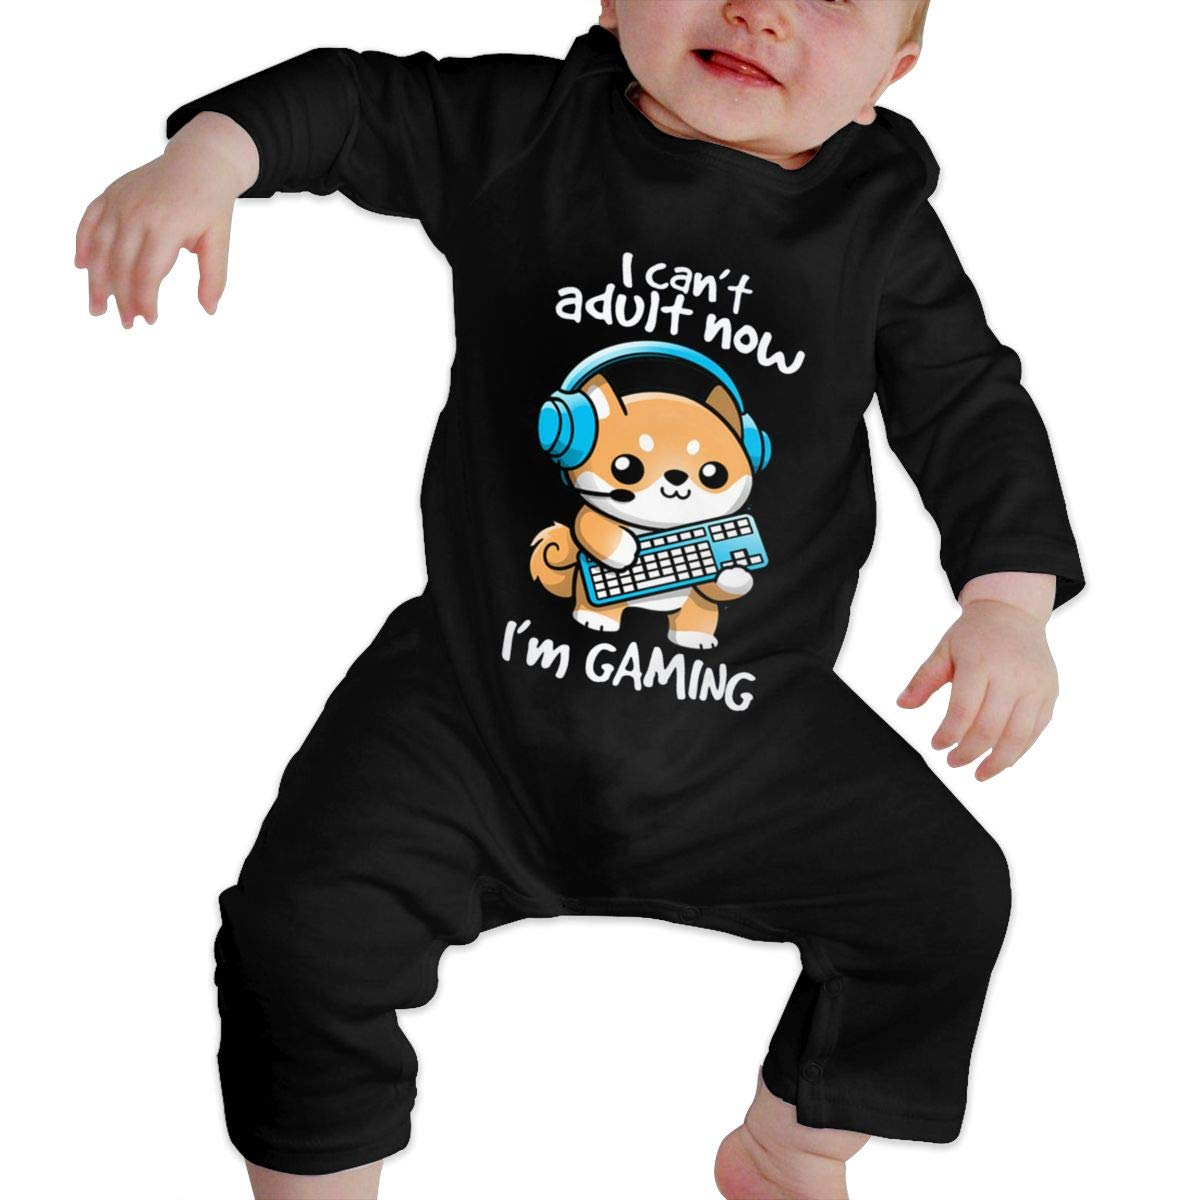 Fasenix Gamer Cant Adult Newborn Baby Boy Girl Romper Jumpsuit Long Sleeve Bodysuit Overalls Outfits Clothes